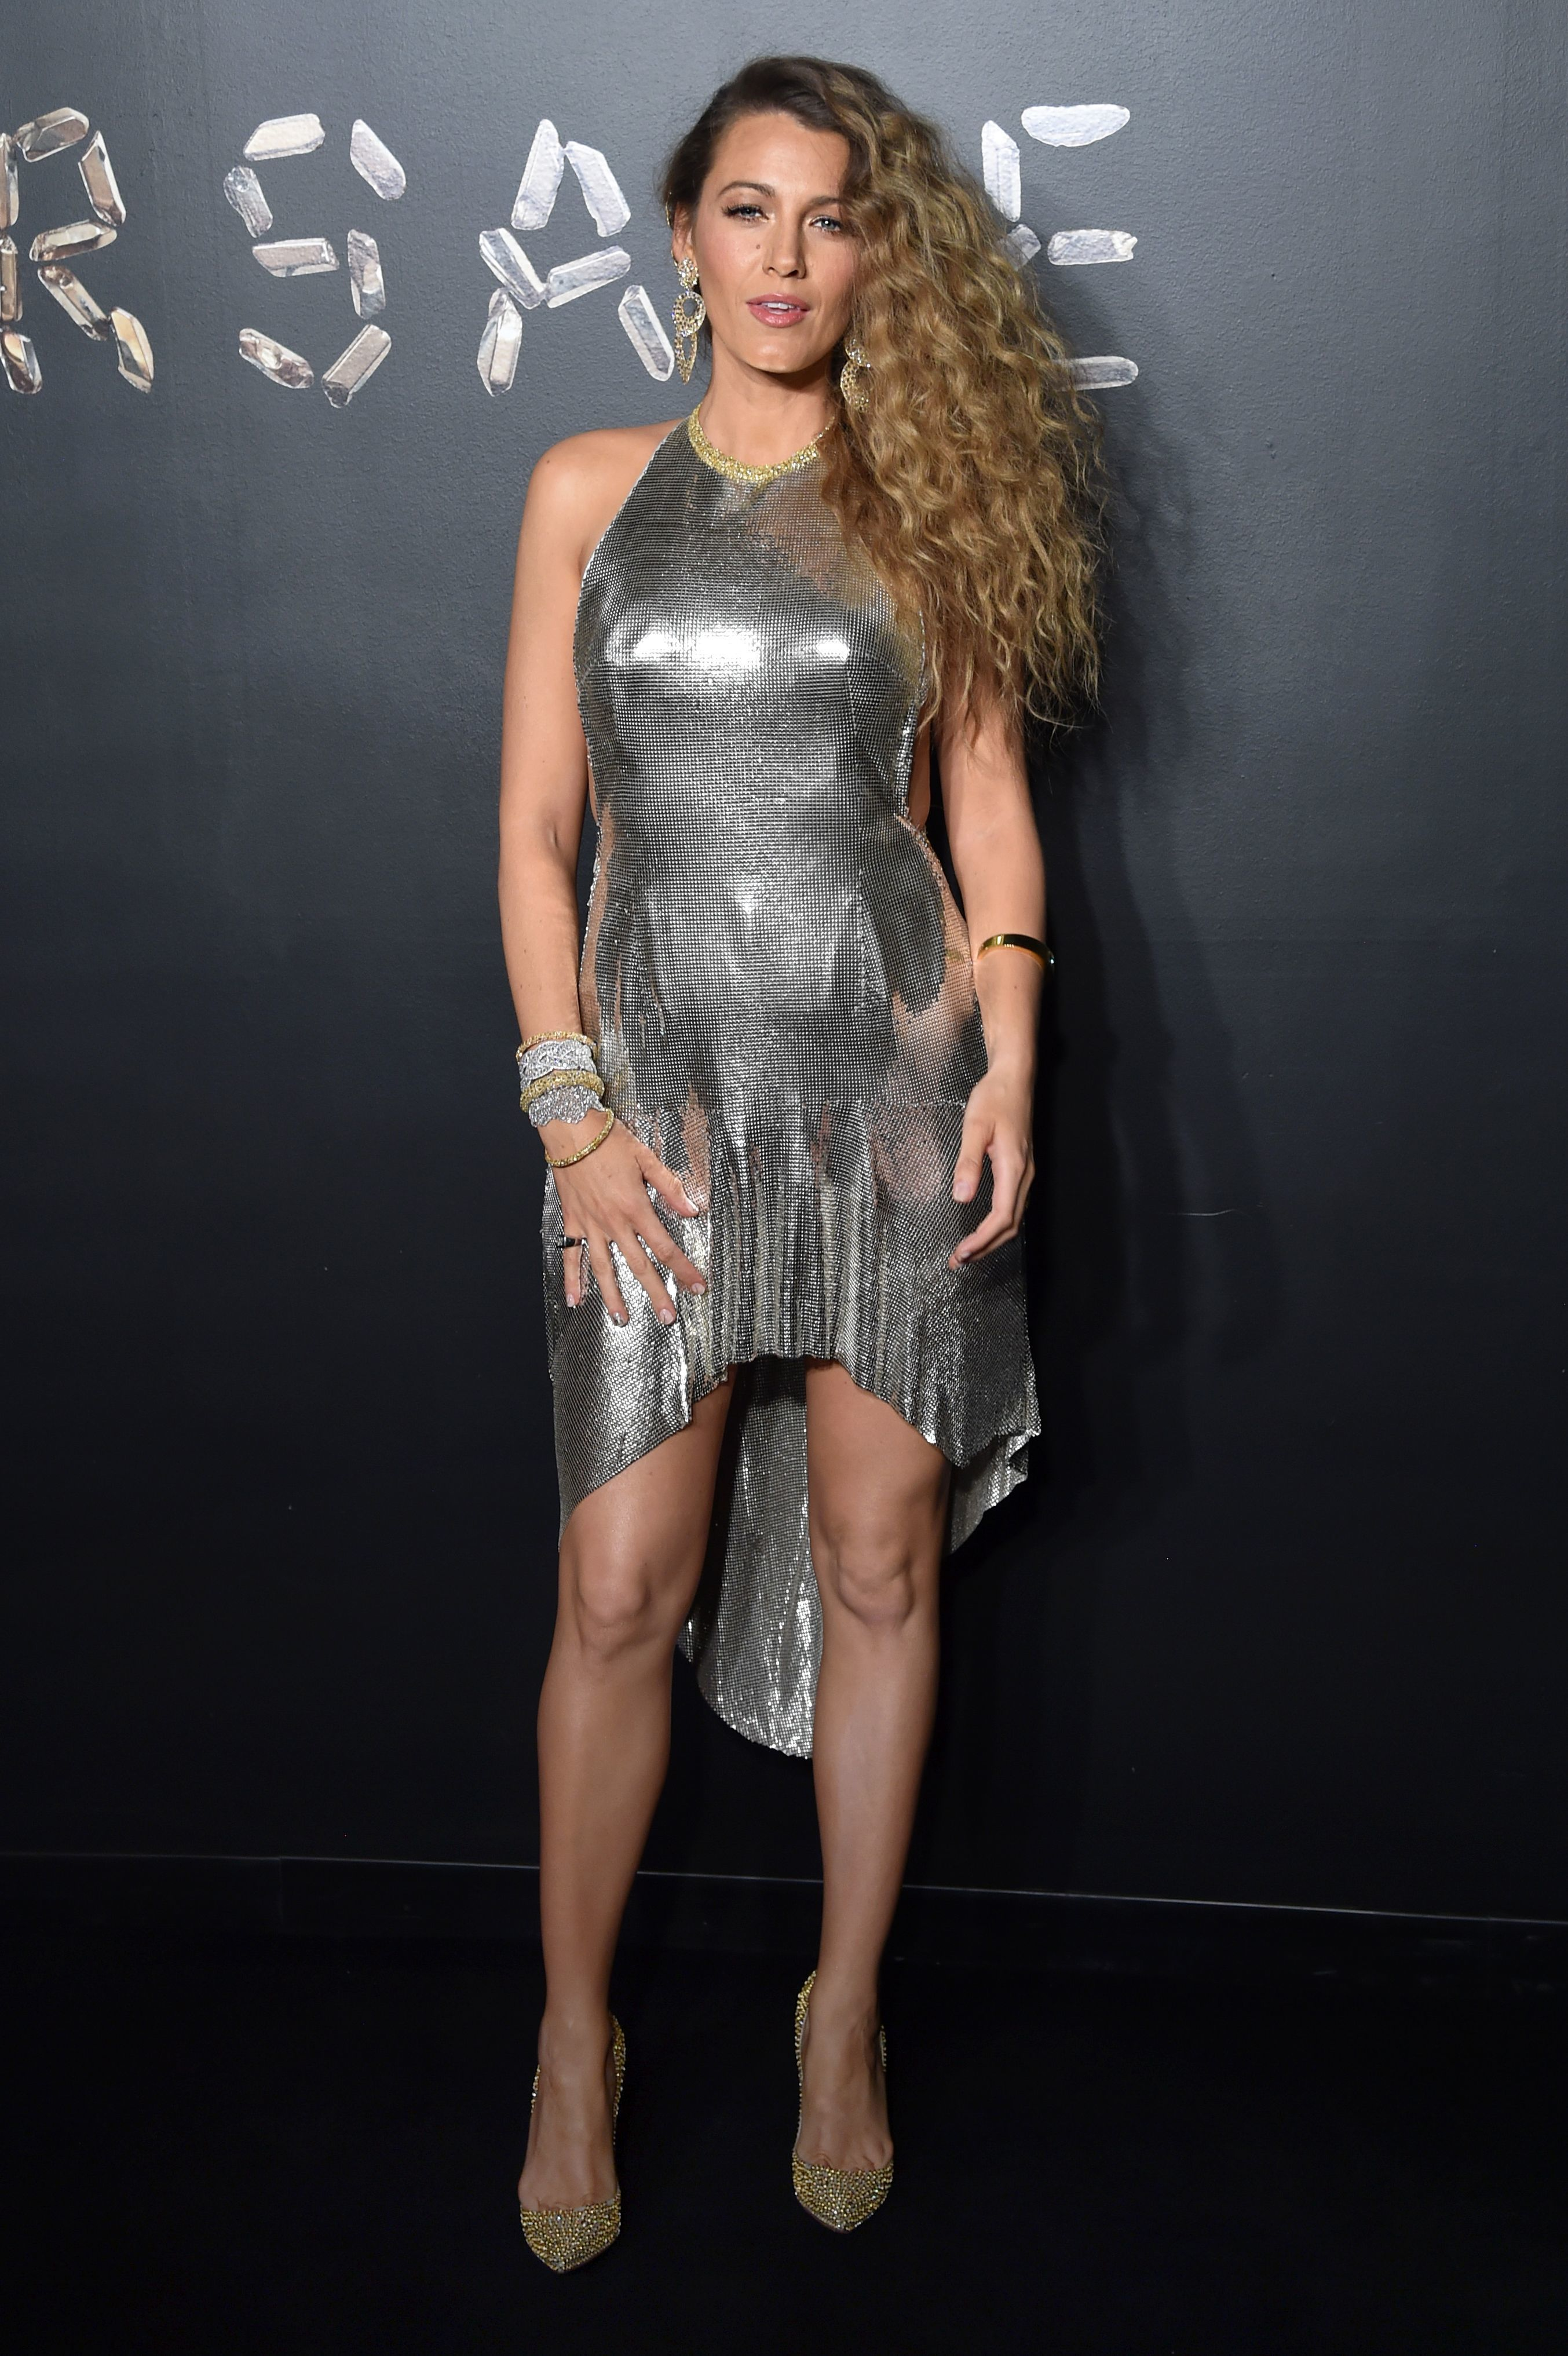 Blake Lively attends the Versace show for Pre Fall 2019 in New York City on Dec. 2, 2018.